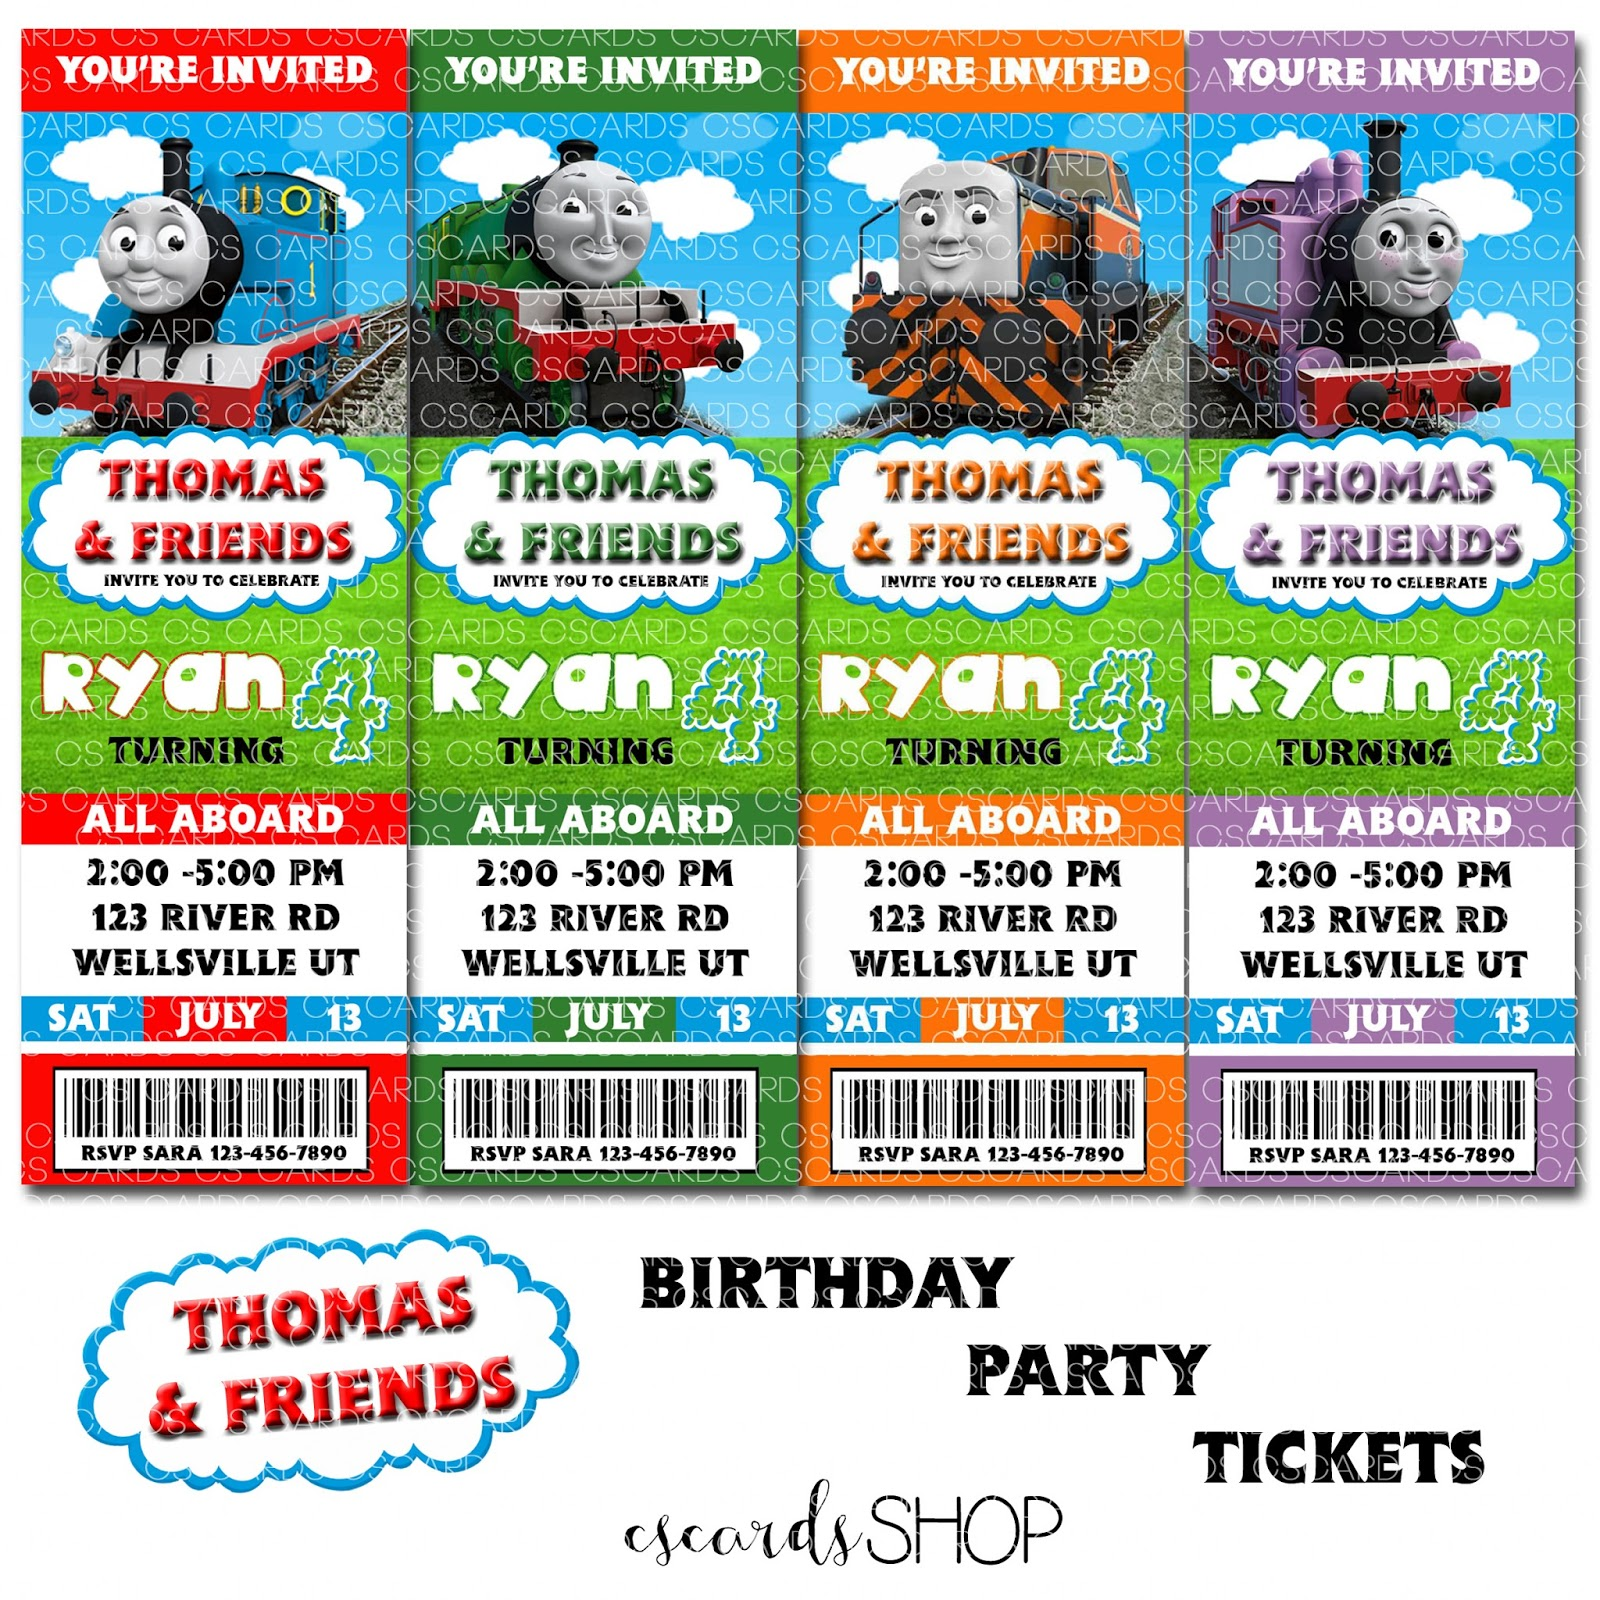 CS Cards New Invitation Designs – Thomas the Train Birthday Invites